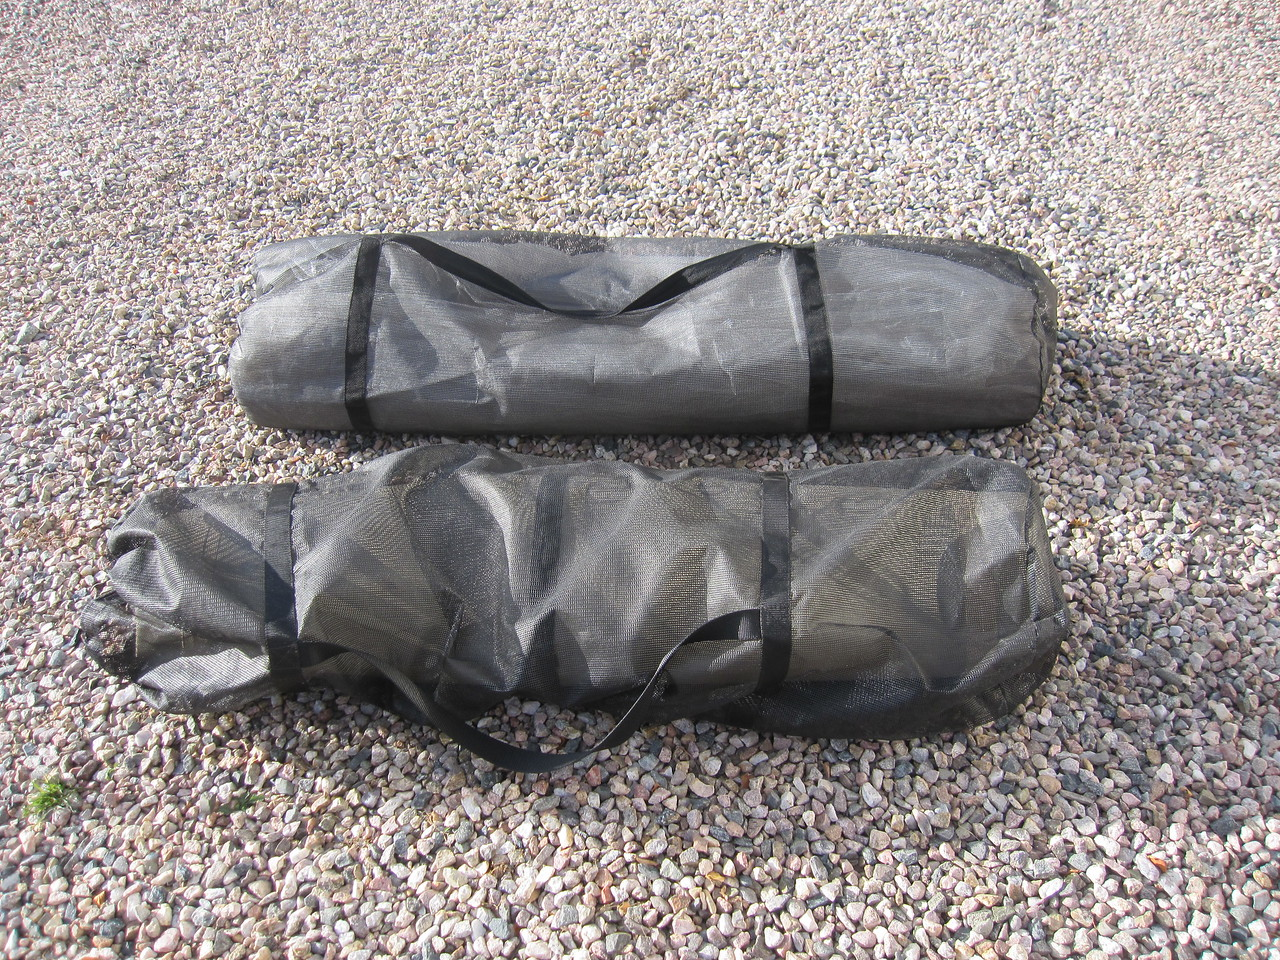 Two 100 gallon bladder tanks.  One is for remote diesel fueling and the other is for potable water.  Transfer pumps and hoses for both tanks are included.